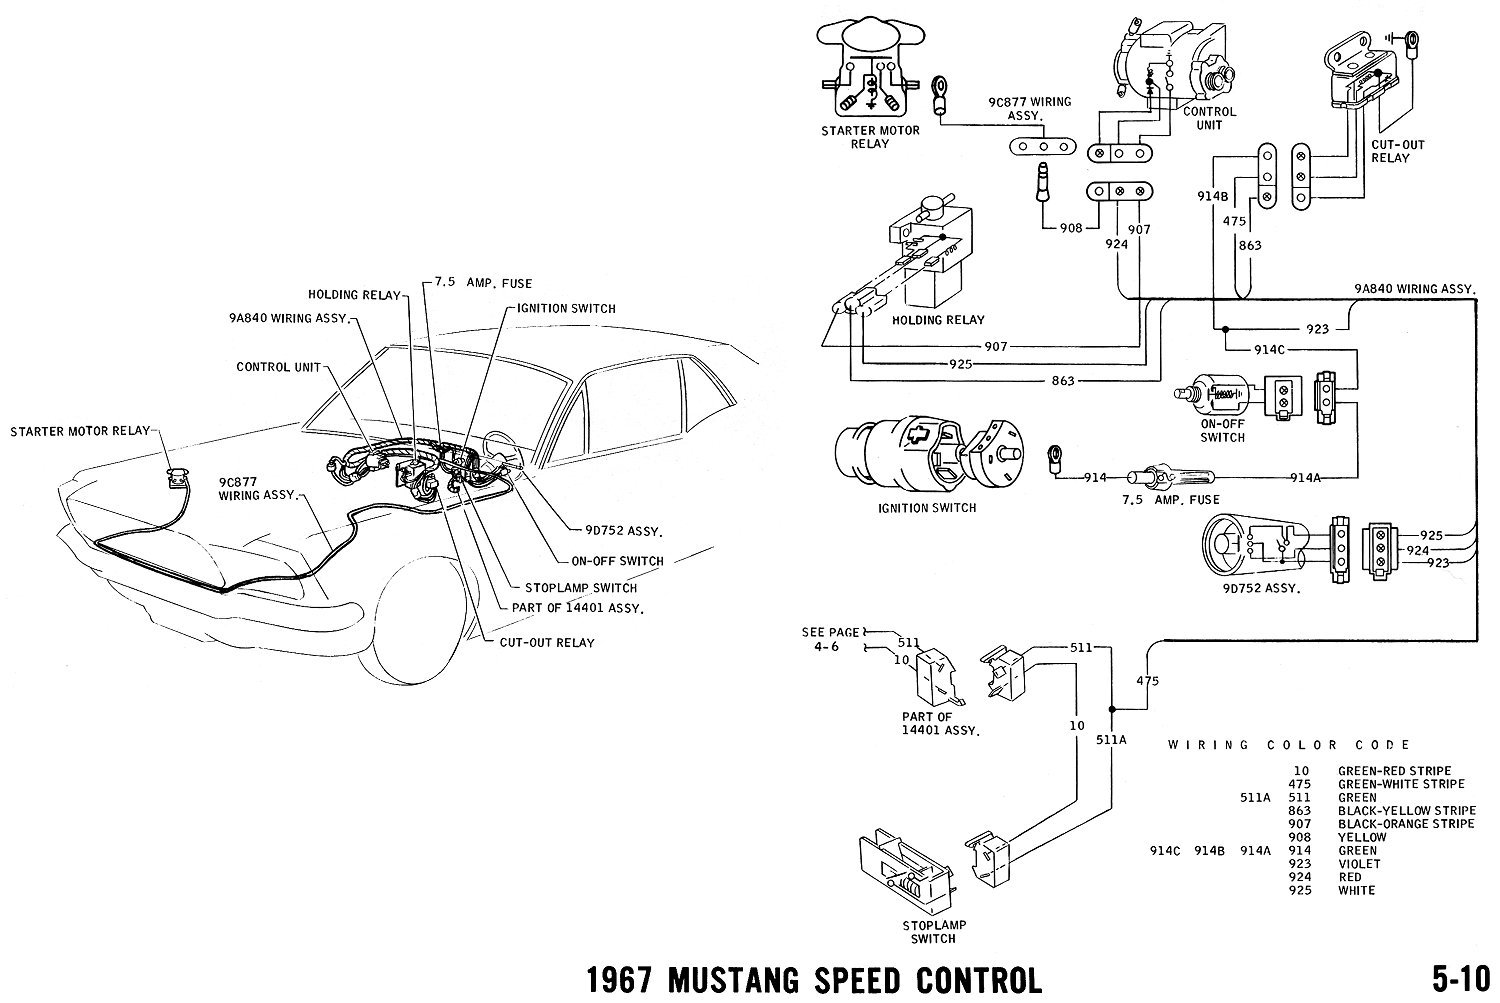 67speed 1967 mustang wiring and vacuum diagrams average joe restoration 1967 mustang wiring diagram at gsmportal.co